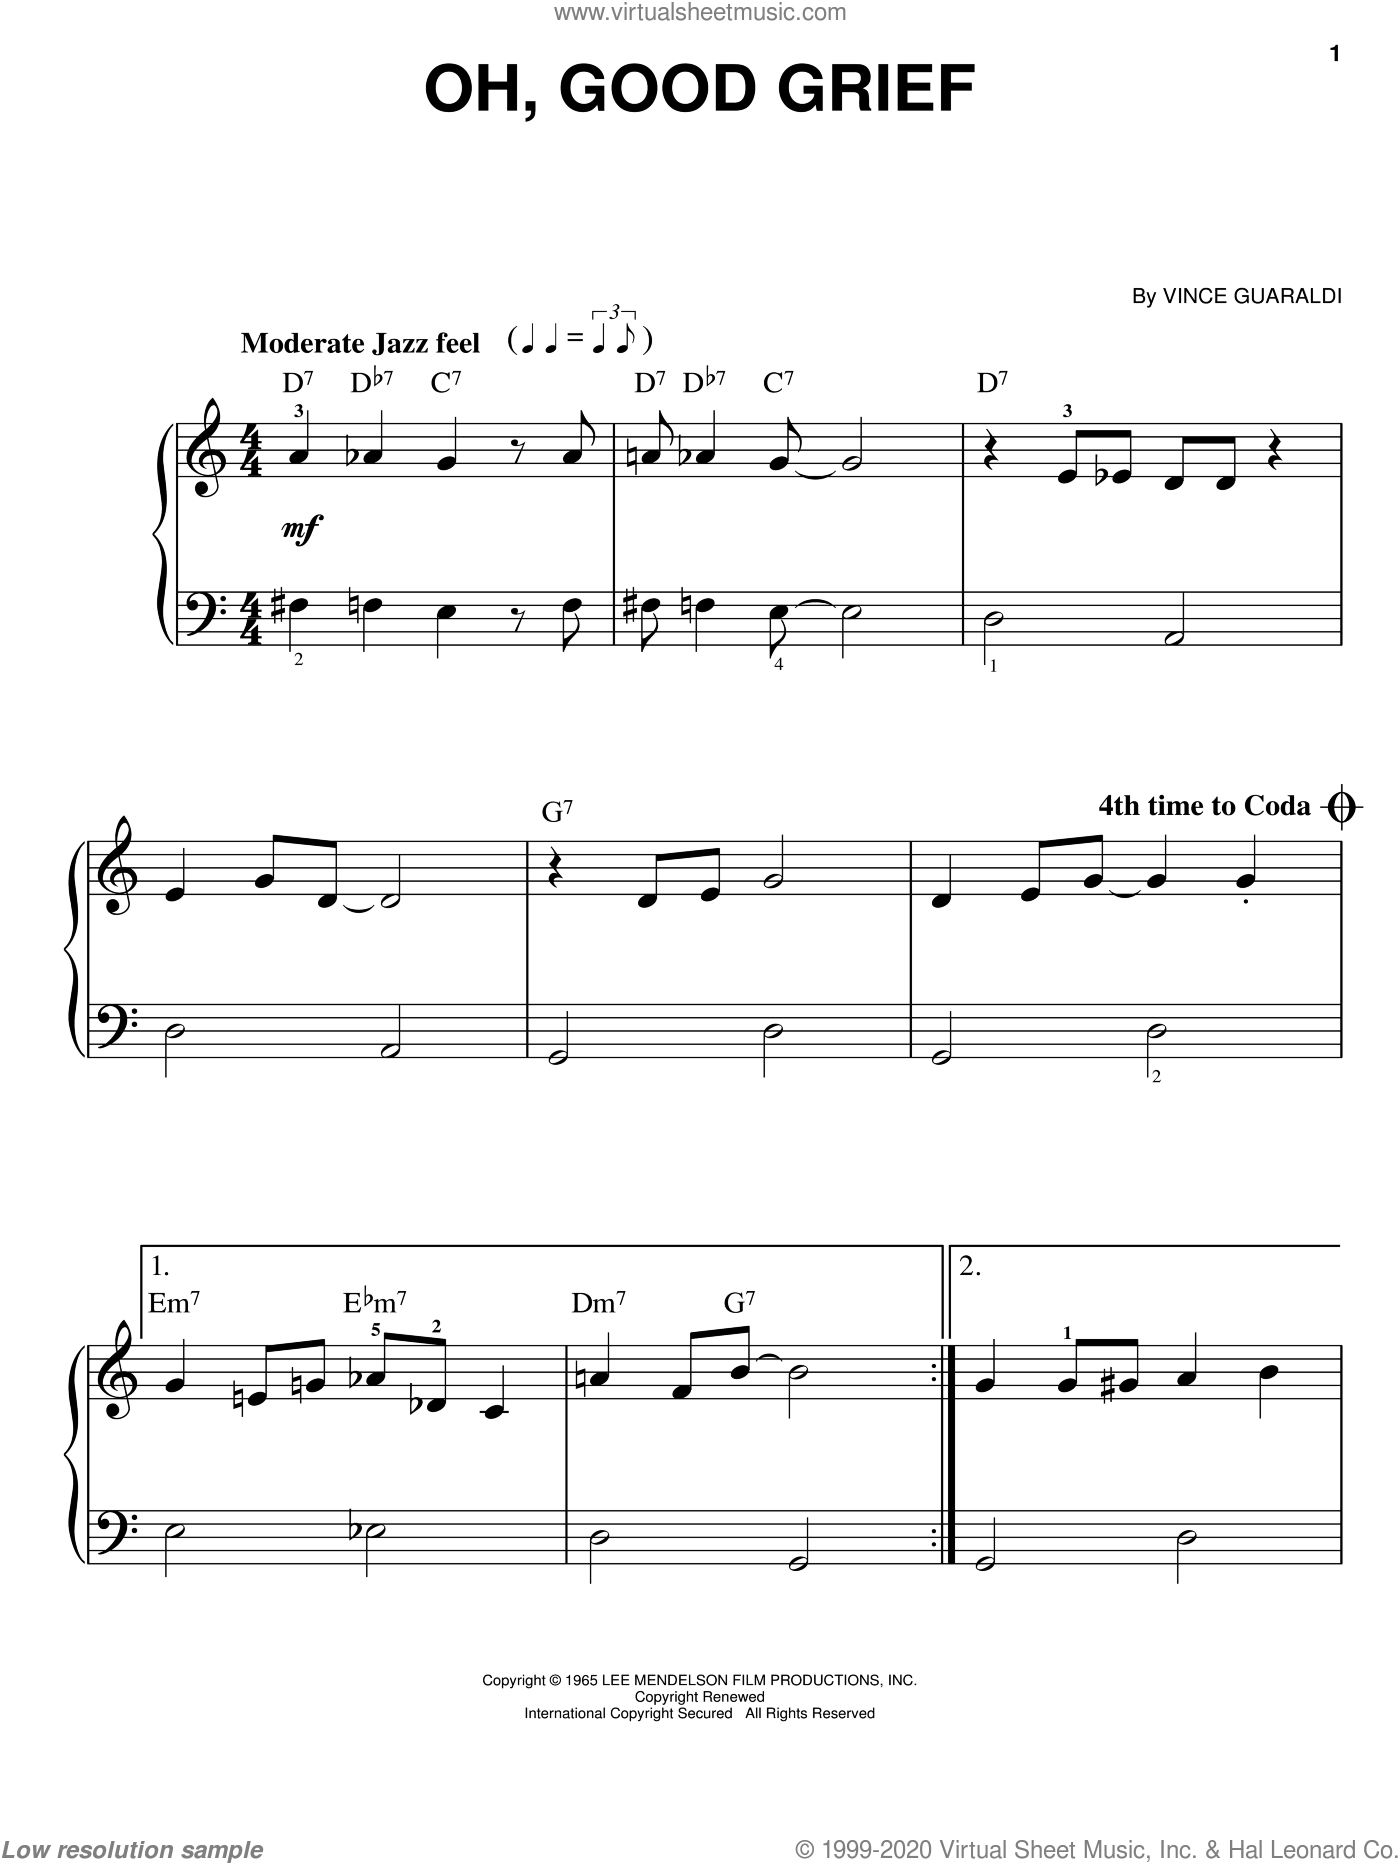 Oh, Good Grief sheet music for piano solo by Vince Guaraldi, easy skill level